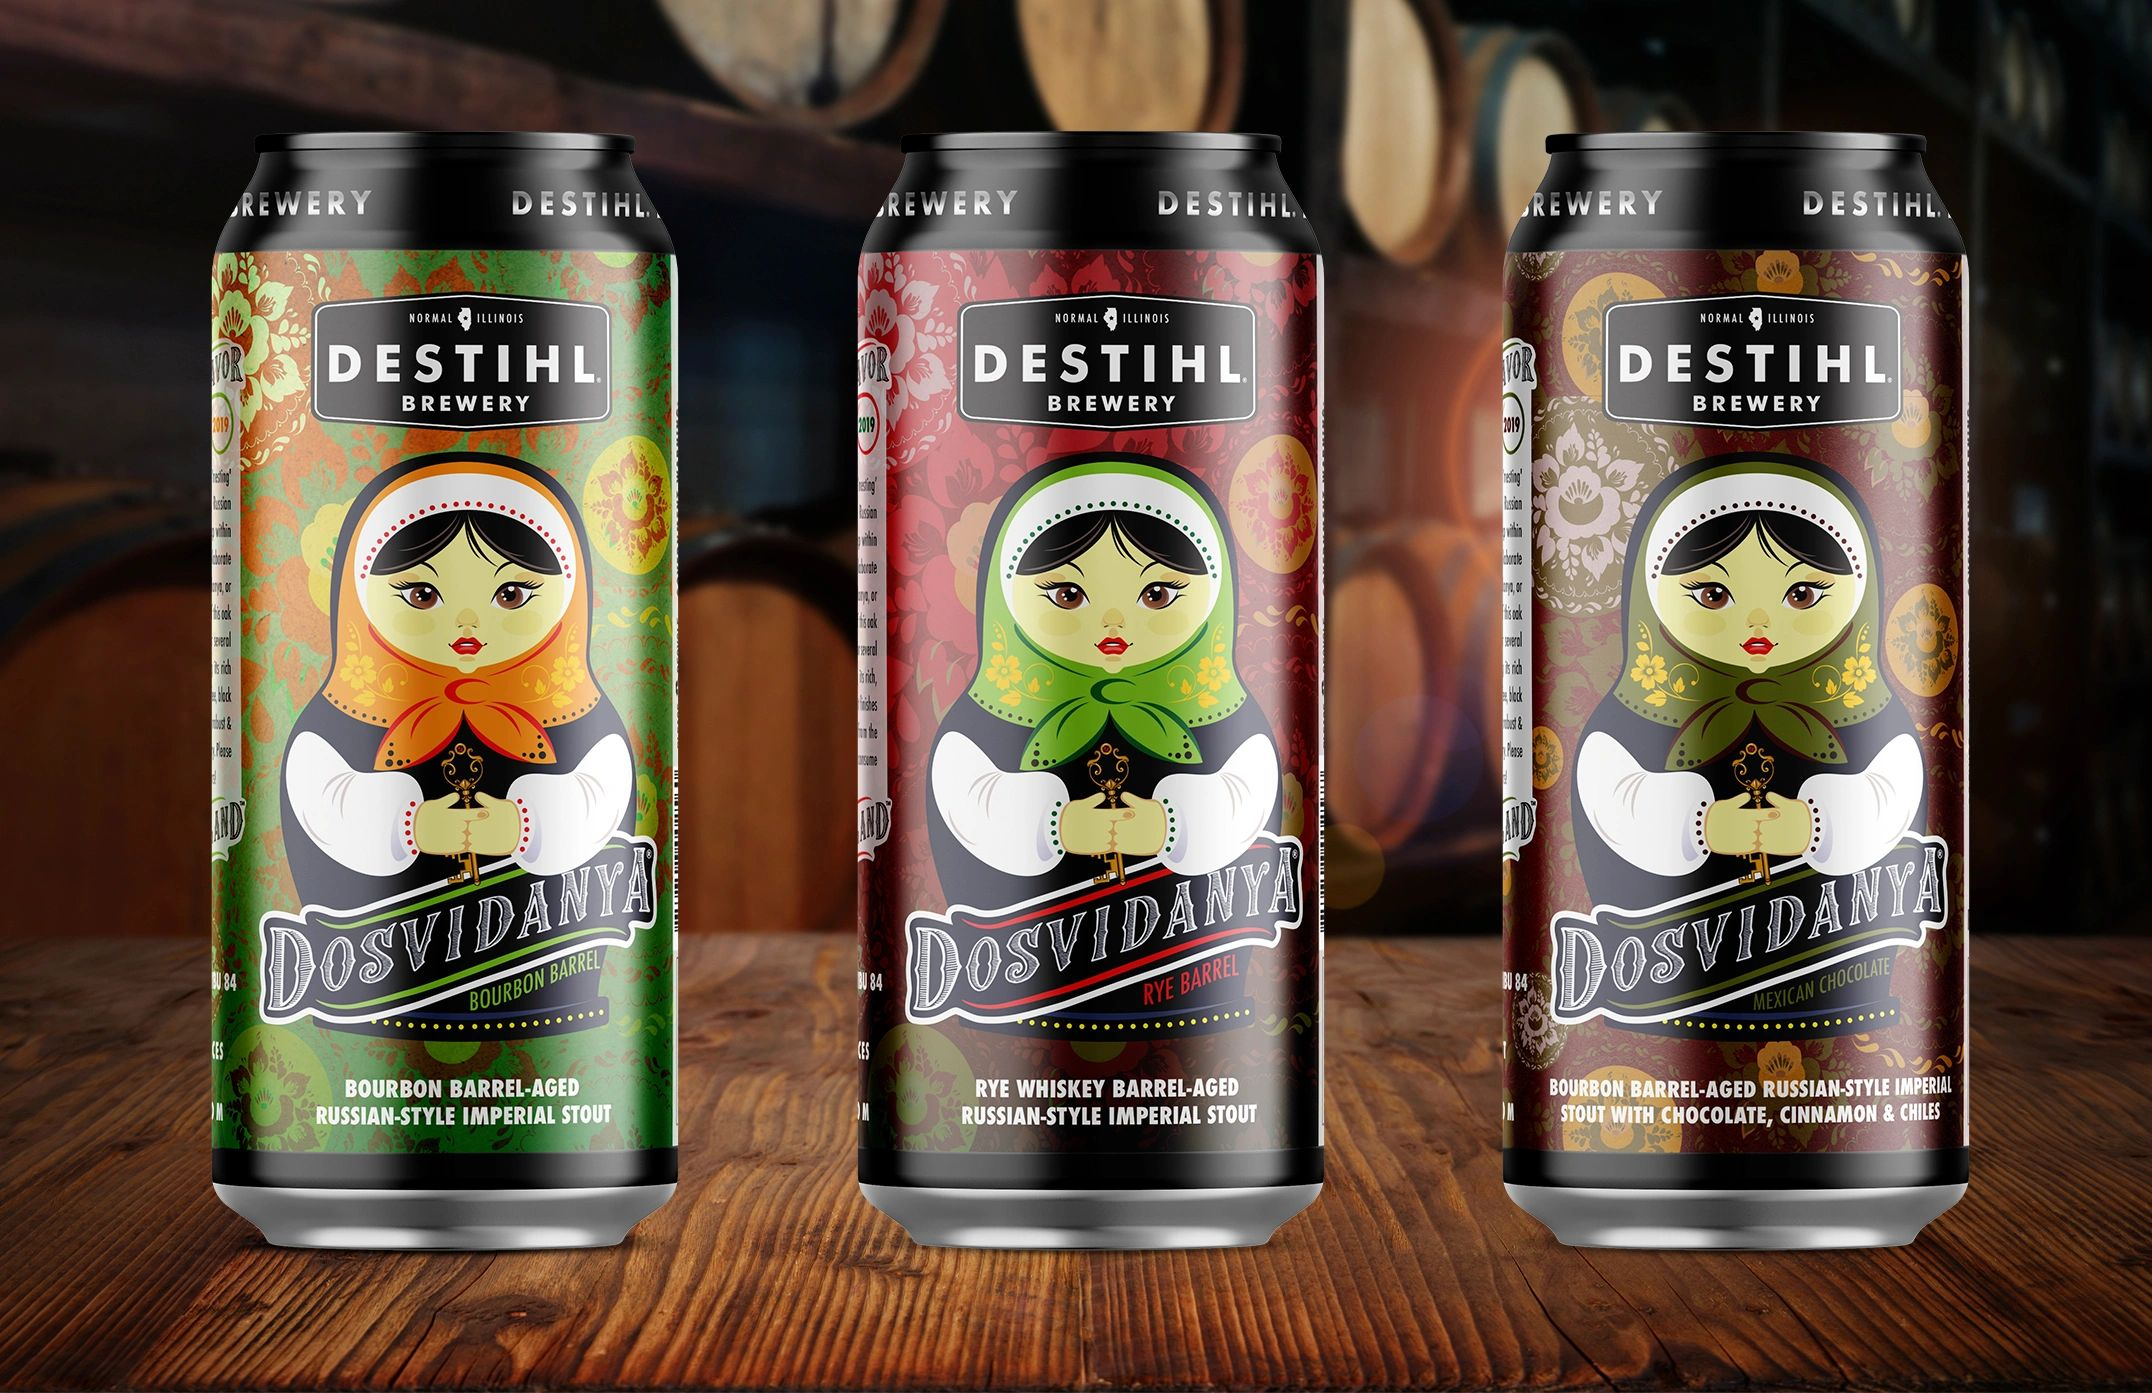 An image of DESTIHL Brewery's Dosvidanya® Russian Imperial Stout cans lined up in front of a backgro